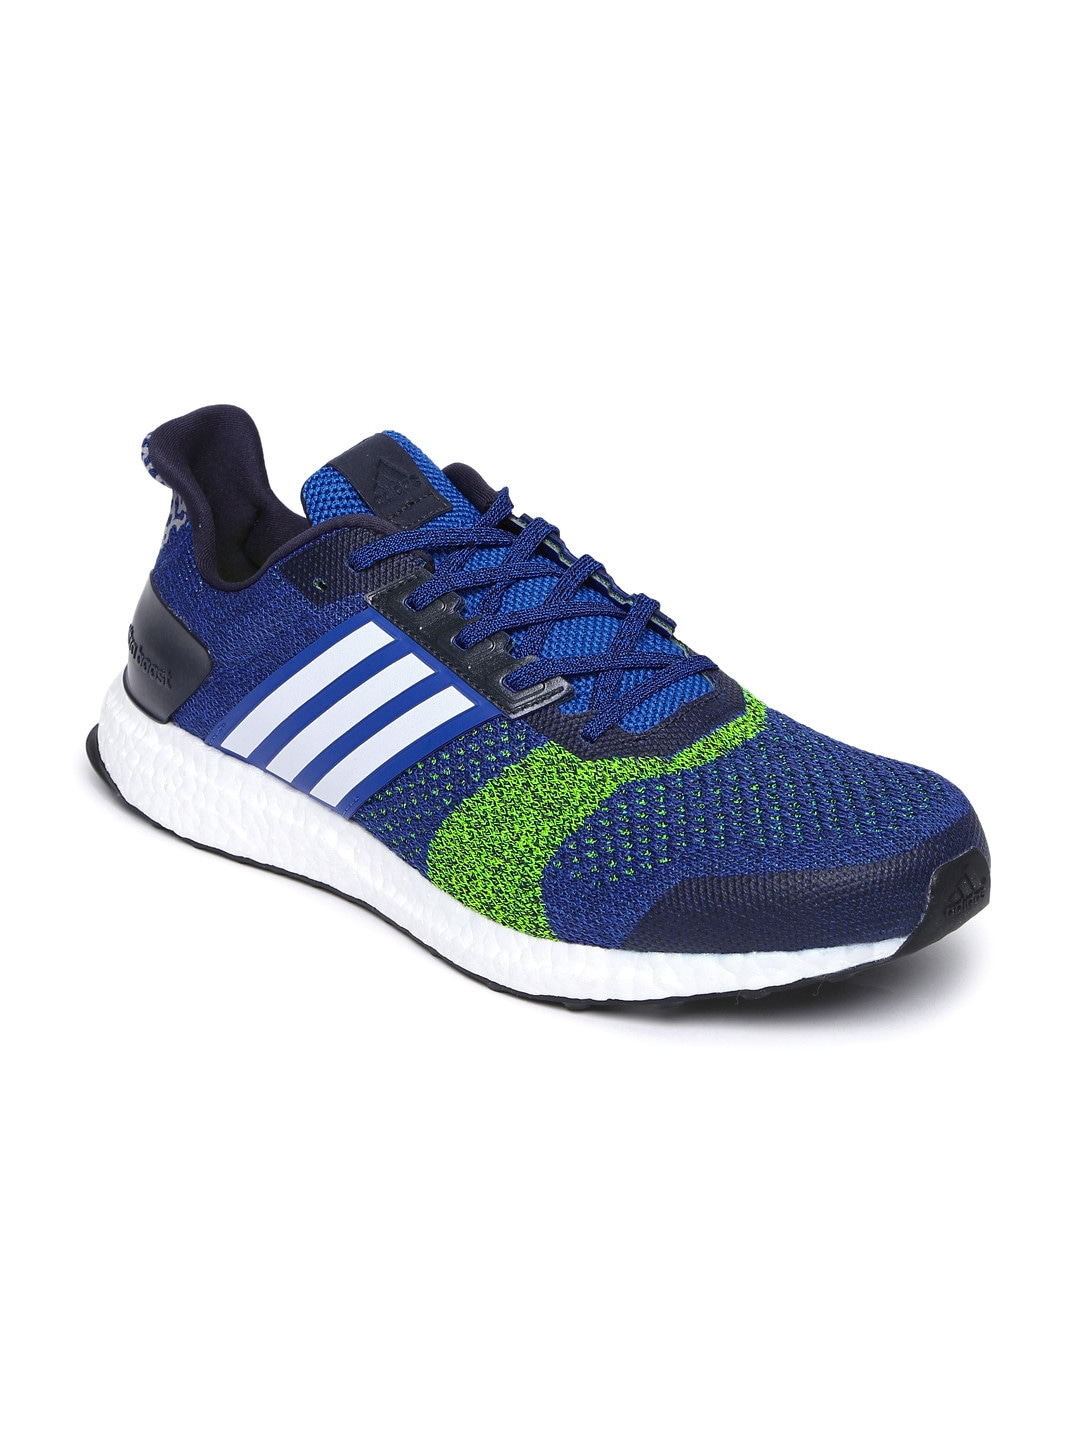 Adidas Shoes Sport 2017